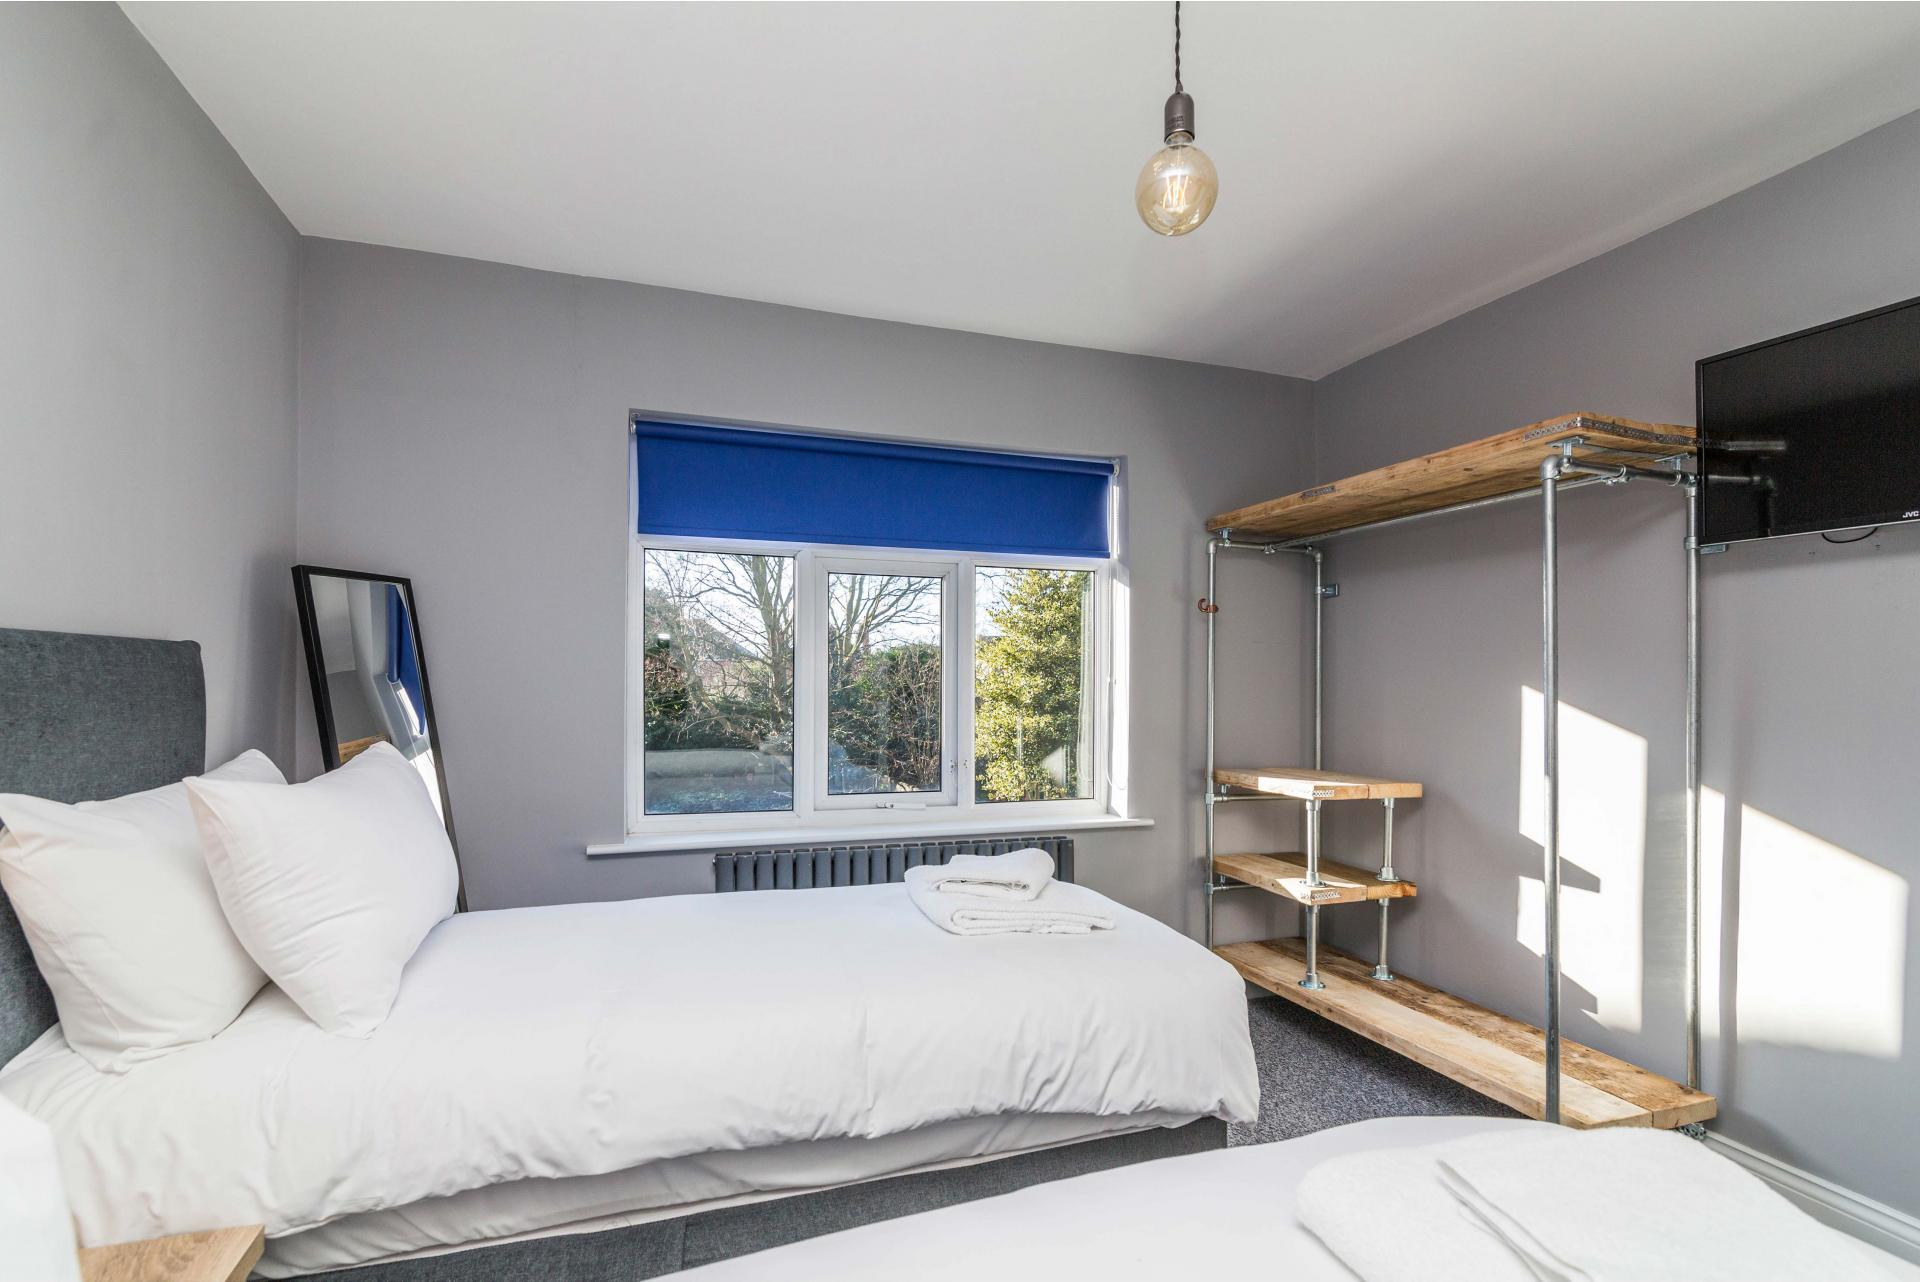 Twin beds at Charnwood House, Sawley, Nottingham - Citybase Apartments